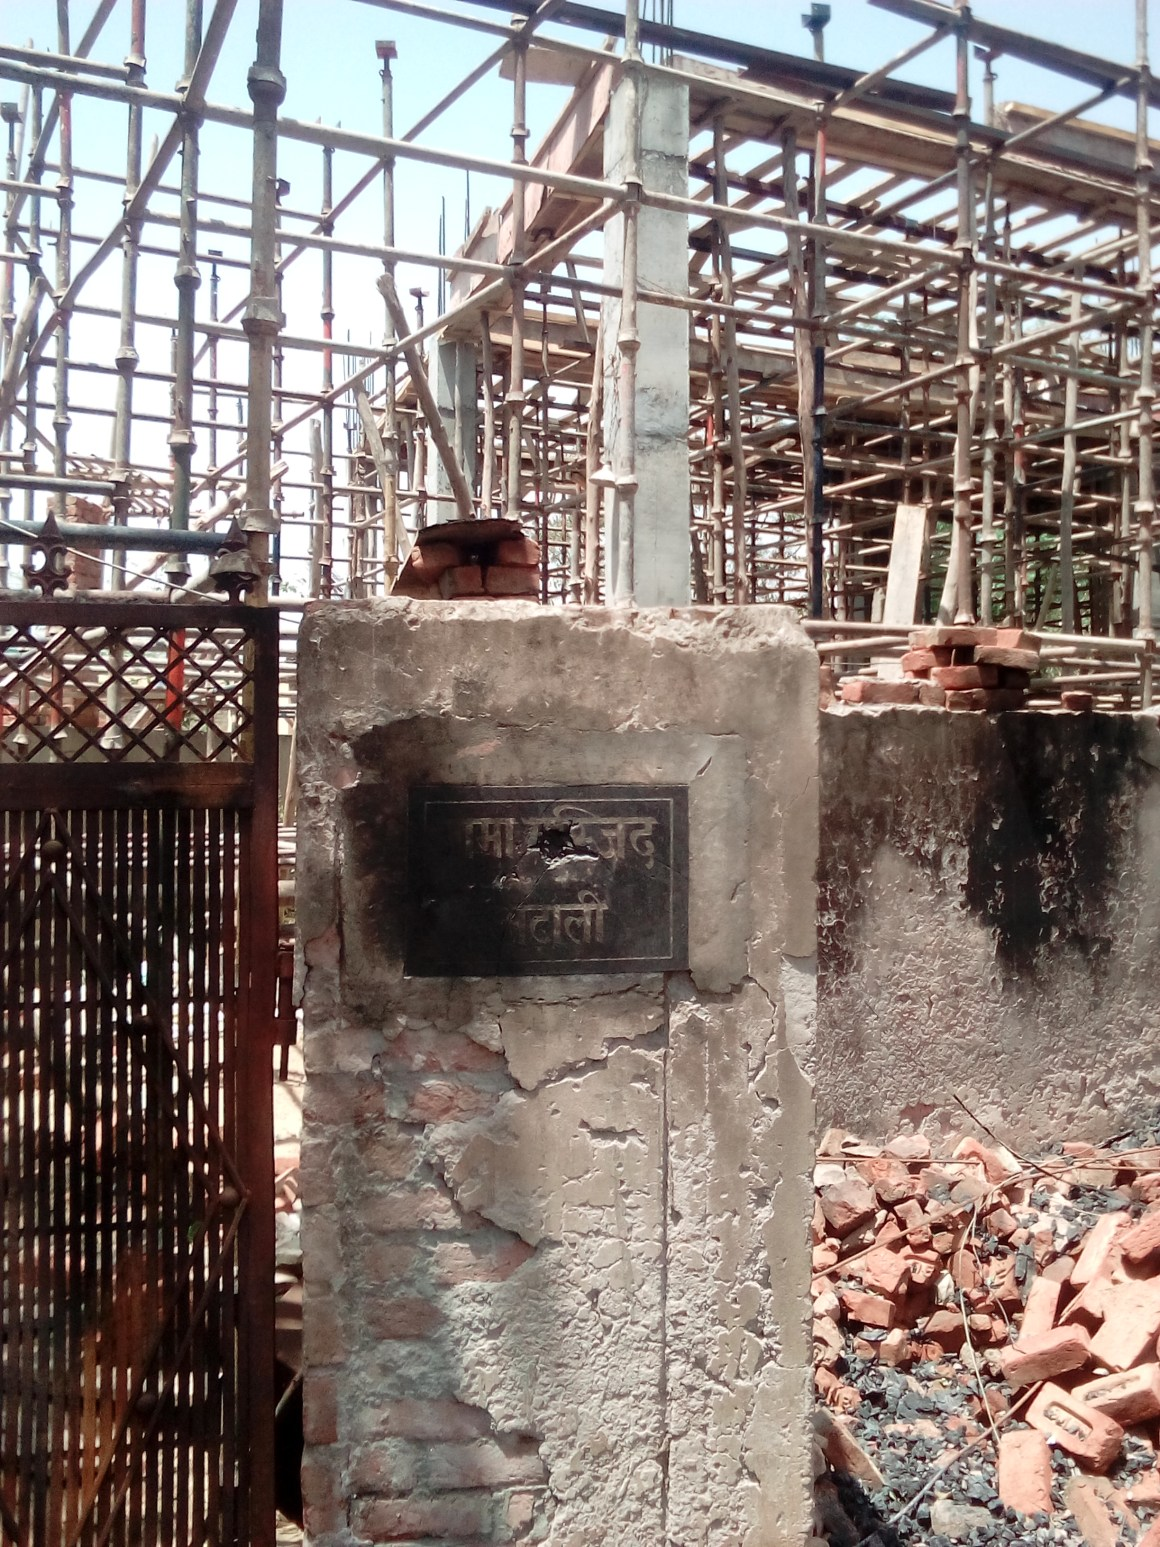 Atali's unfinished mosque, where the attackers first appeared on 25 May. Credit: Jyotsna Singh